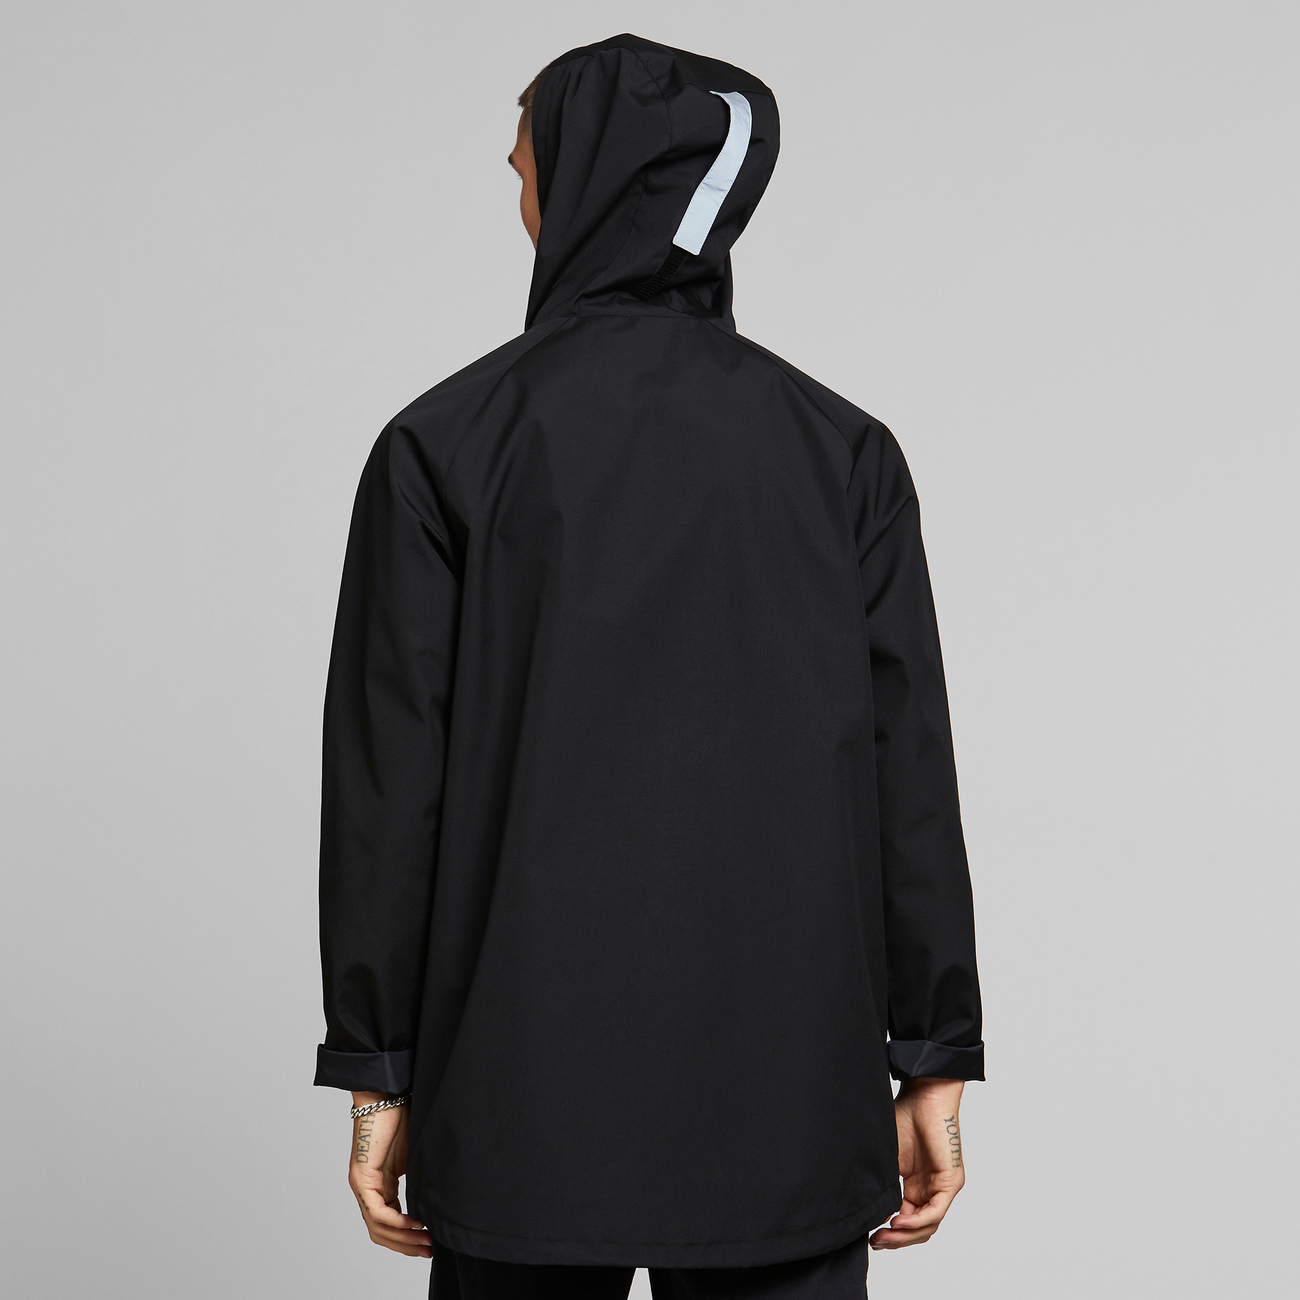 Jacket Hoddevik Black